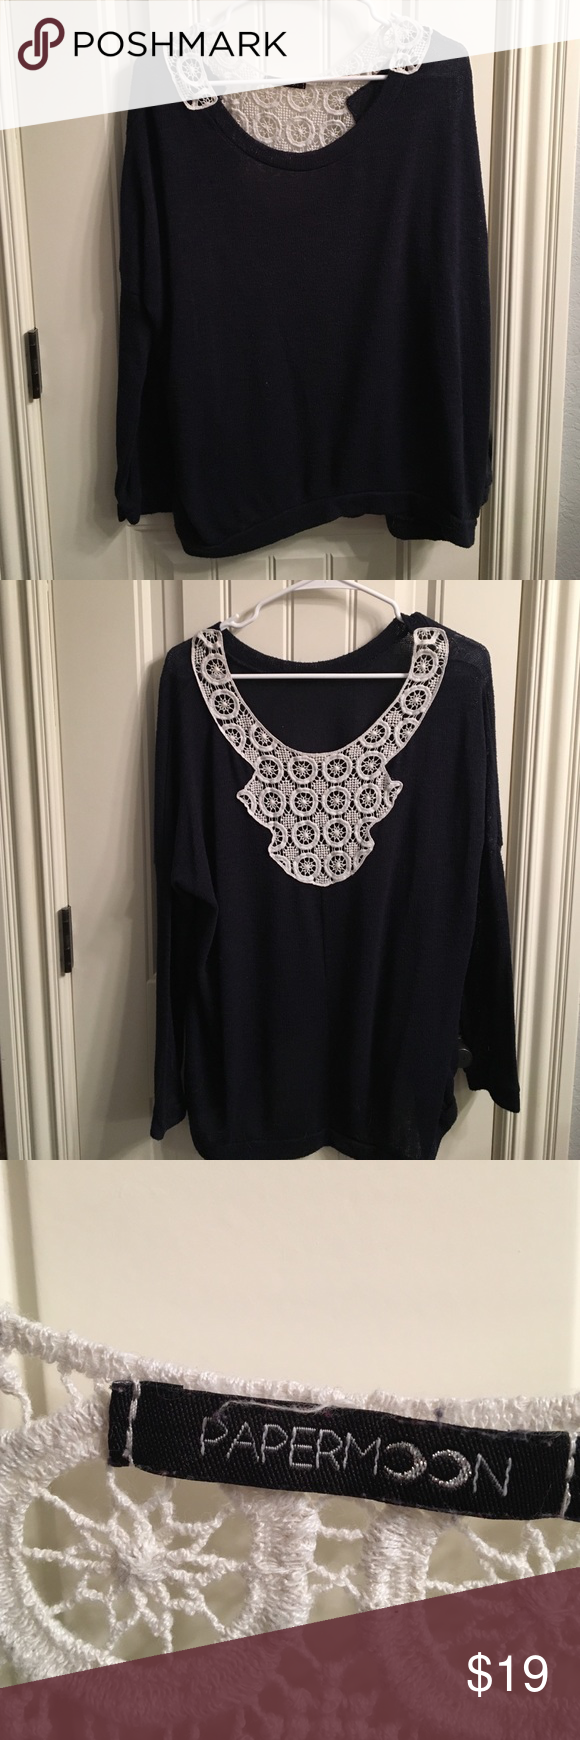 Women's XL navy sweater with lace on back Women's XL navy sweater with lace on back.  Got it from stitch fix, it's very roomy and it covers a bra, appropriate for work and otherwise. Papermoon Sweaters Crew & Scoop Necks